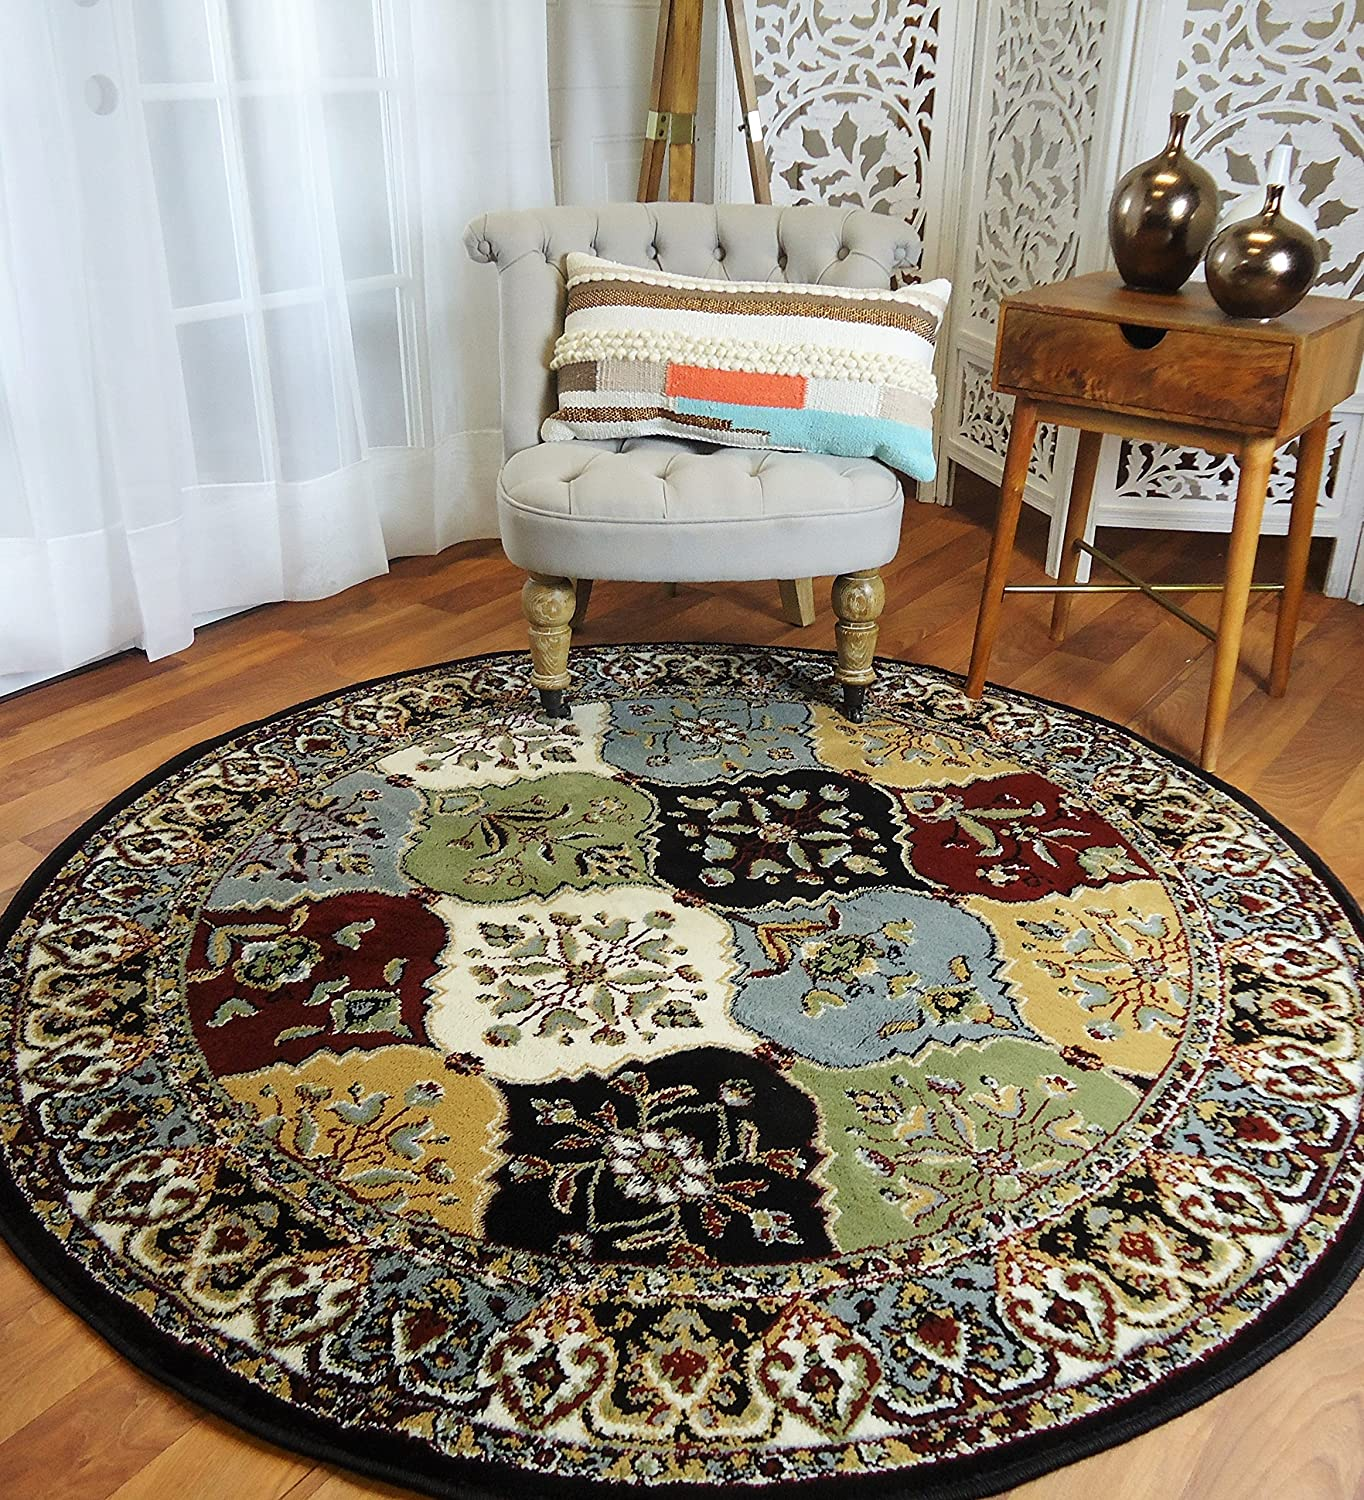 Amazon Com Round Rugs 6ft Multi Color Rug Circle Rugs For Living Room And Dining Room Rugs 5x5 Ft Home Kitchen